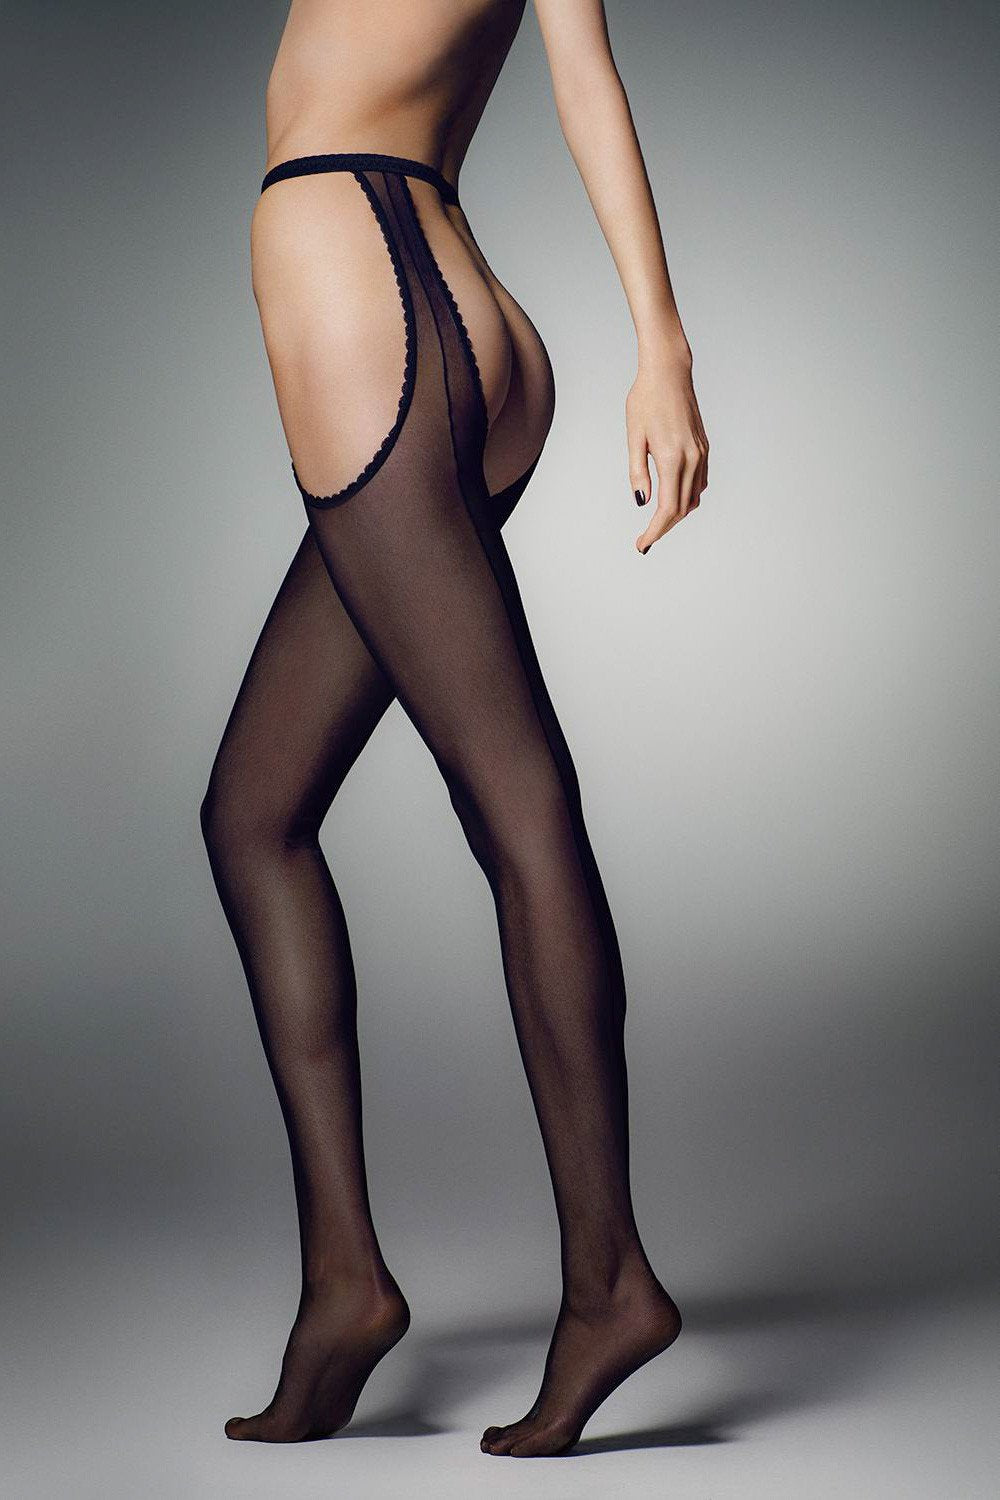 Veneziana Riga Strip Panty Suspender Tights - The Hosiery Box